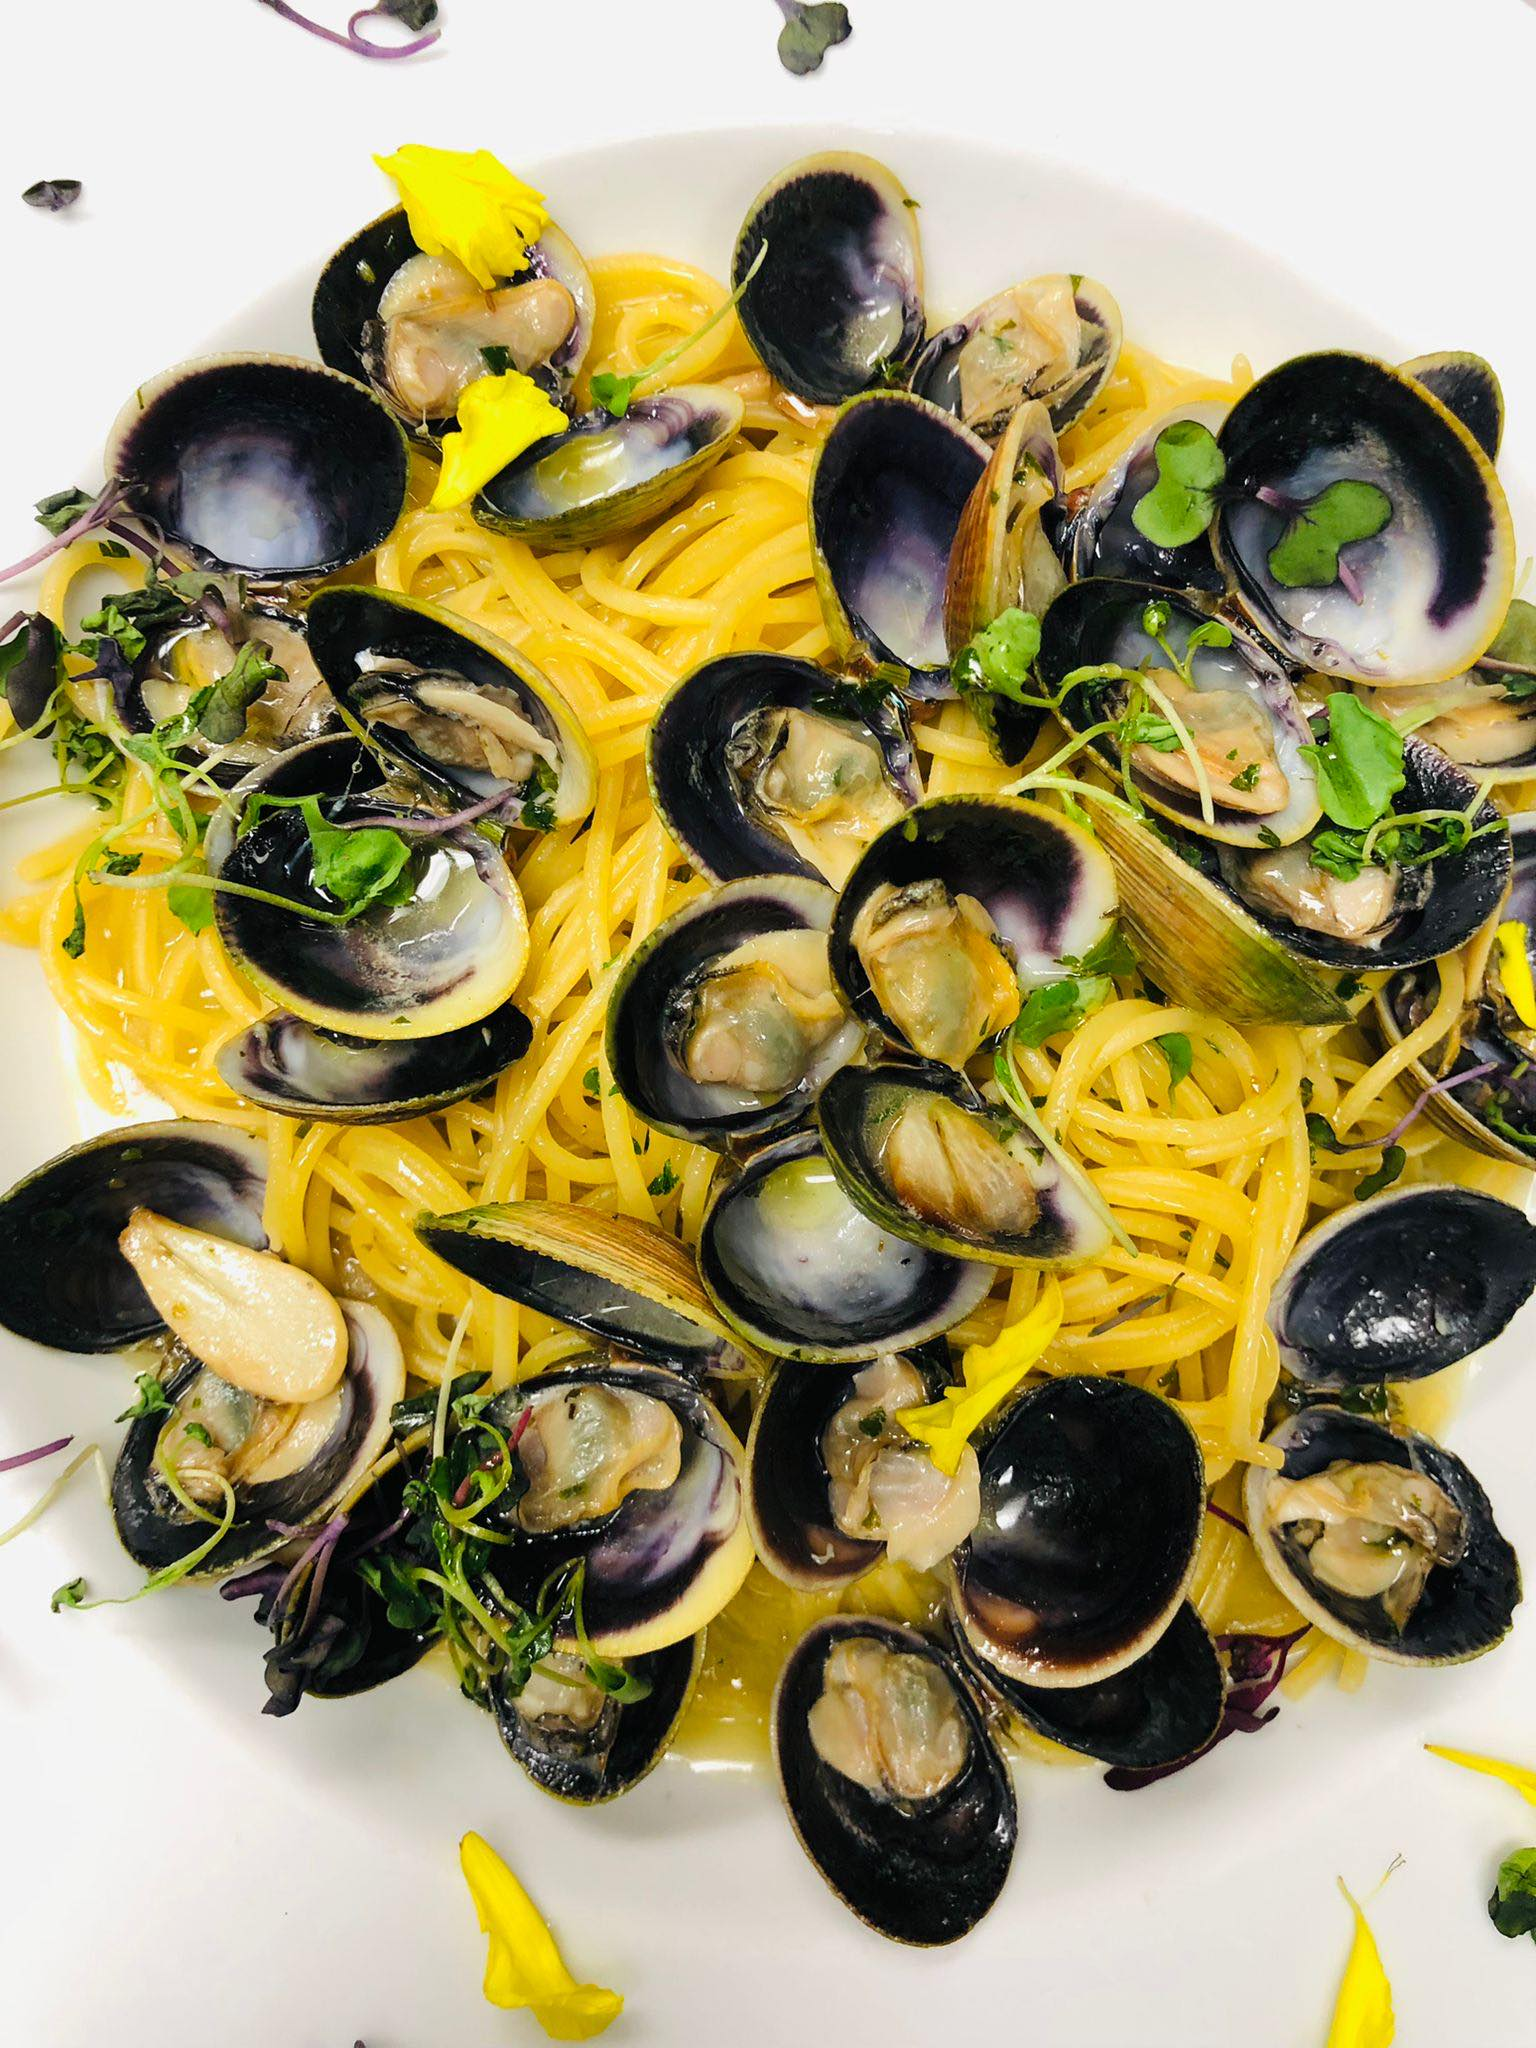 Clams and spaghetti, part of the menu at Town Square's new Milano Restaurant & Bar.